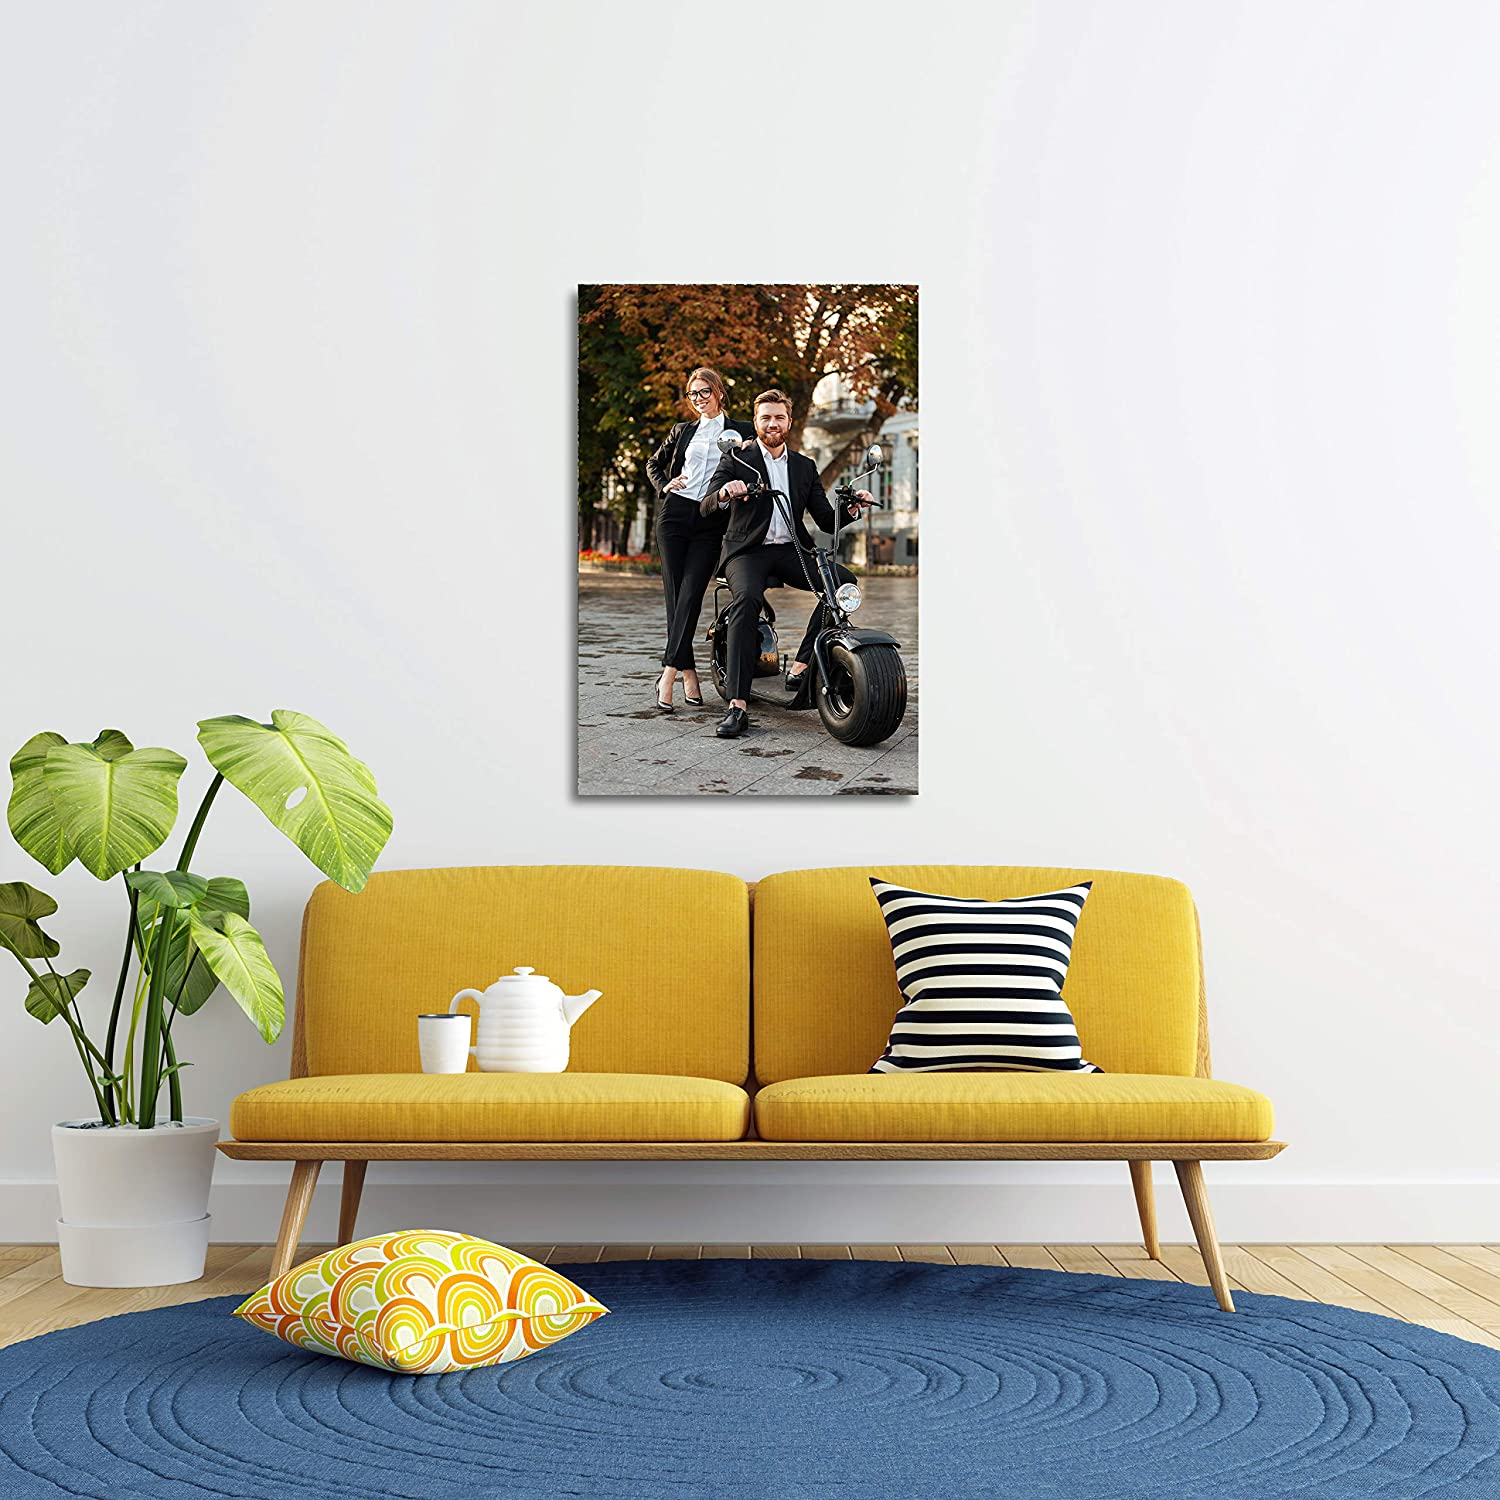 Personalized Family Picture Photo Print Wall Art 4bestprint Photo Canvas Your Image 8 x 10 Customize Your Photo for Perfect Picture for Living Room Kitchen Ready to Hang Framed Canvas Prints from Photos